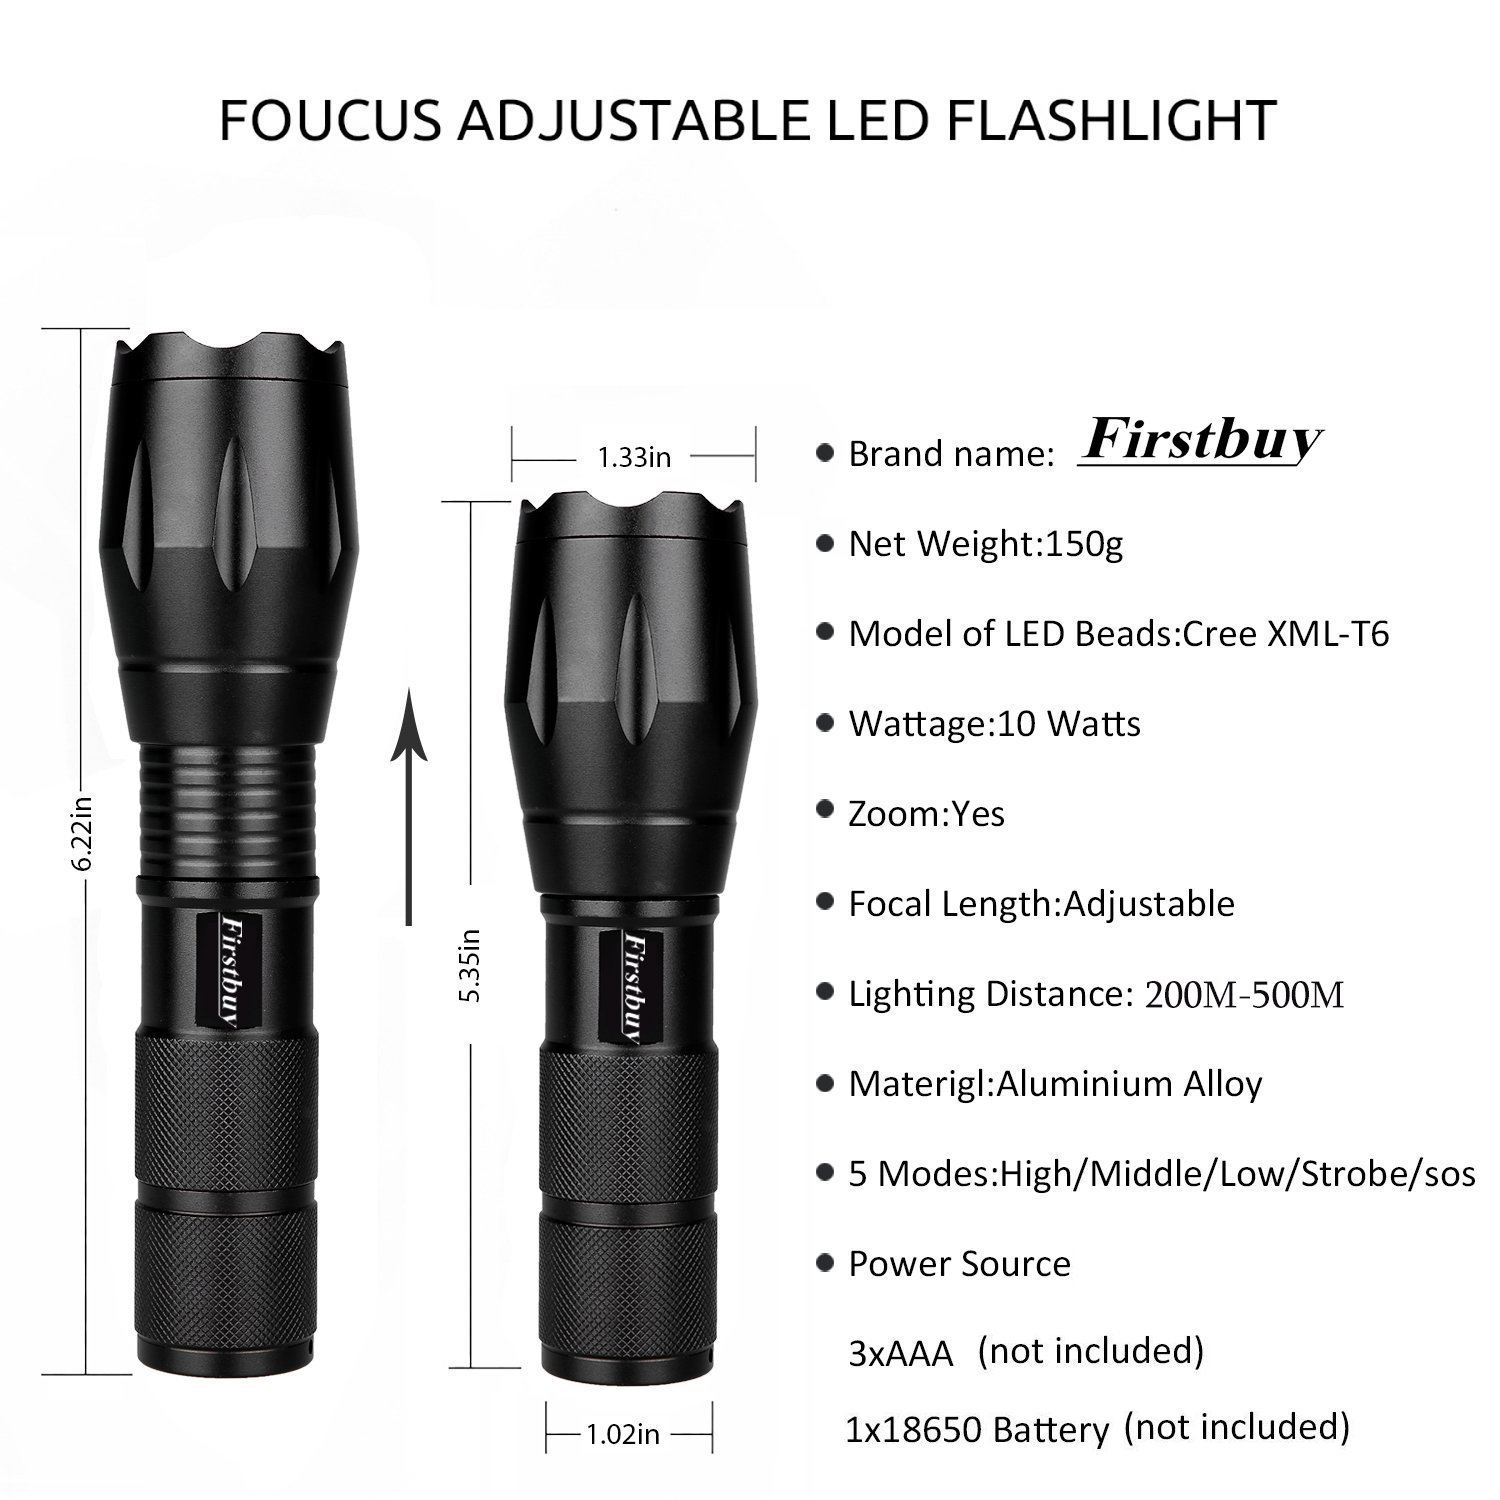 Best Tactical LED Flashlight,Firstbuy 1000Lumens Ultra Bright Handheld Lamp Portable Torch Zoomable Light Outdoor Water Resistant Lantern with Adjustable Focus 5 Modes for Hiking Camping (2 Pack)